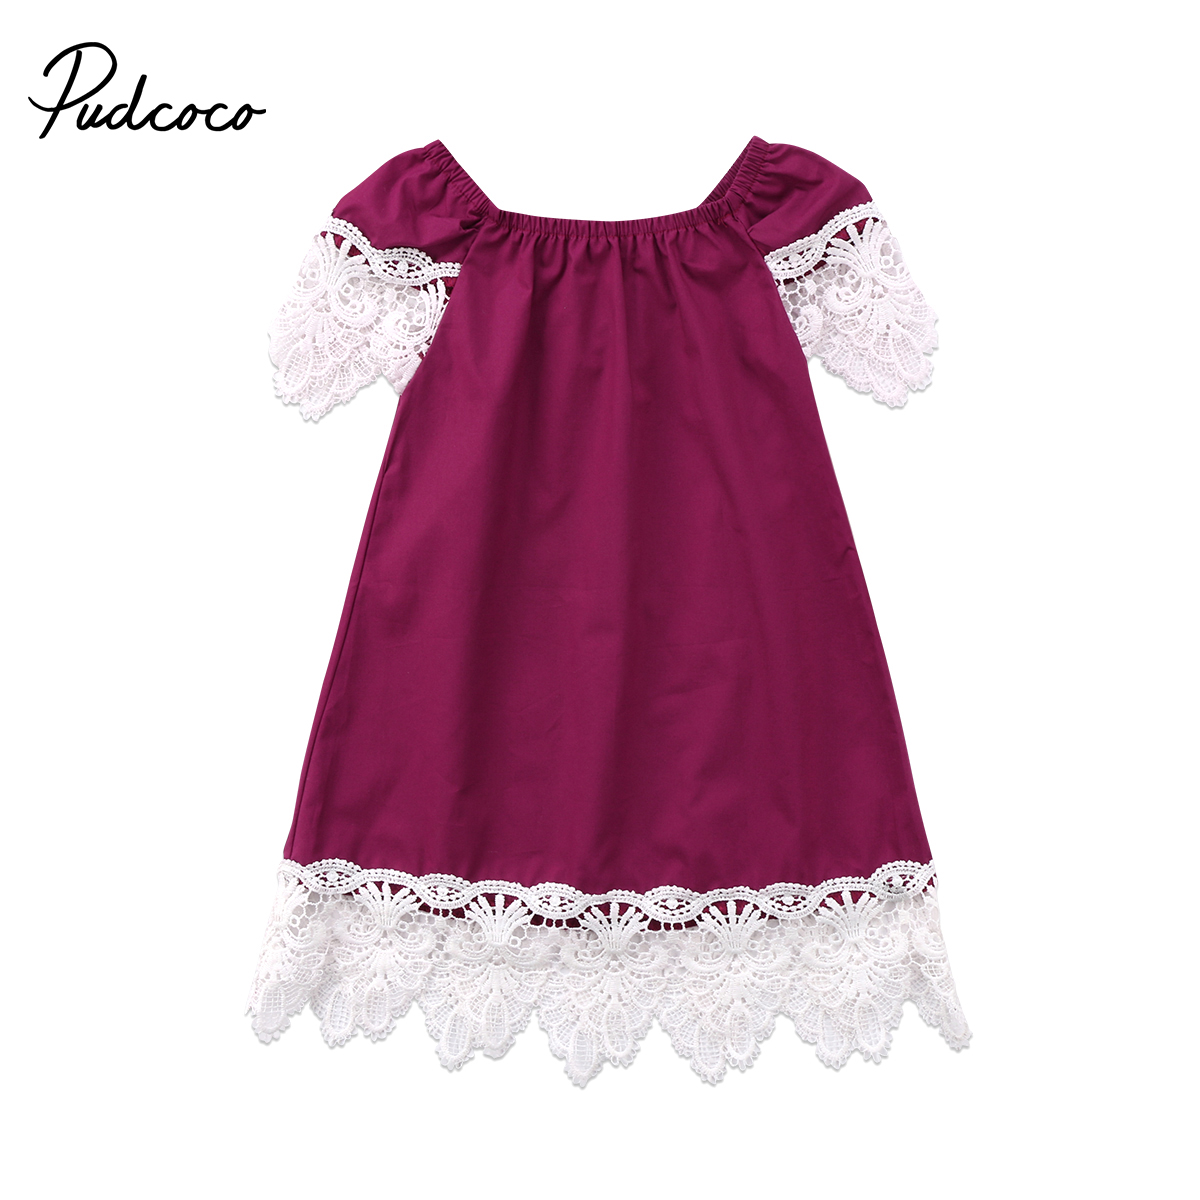 Princess Girl Dress Kids Baby Girls Lace Off Shoulder Party Summer Dress Toddler Baby Girls Purple Sundress Clothes ems dhl free shipping toddler little girl s 2017 princess ruffles layers sleeveless lace dress summer style suspender